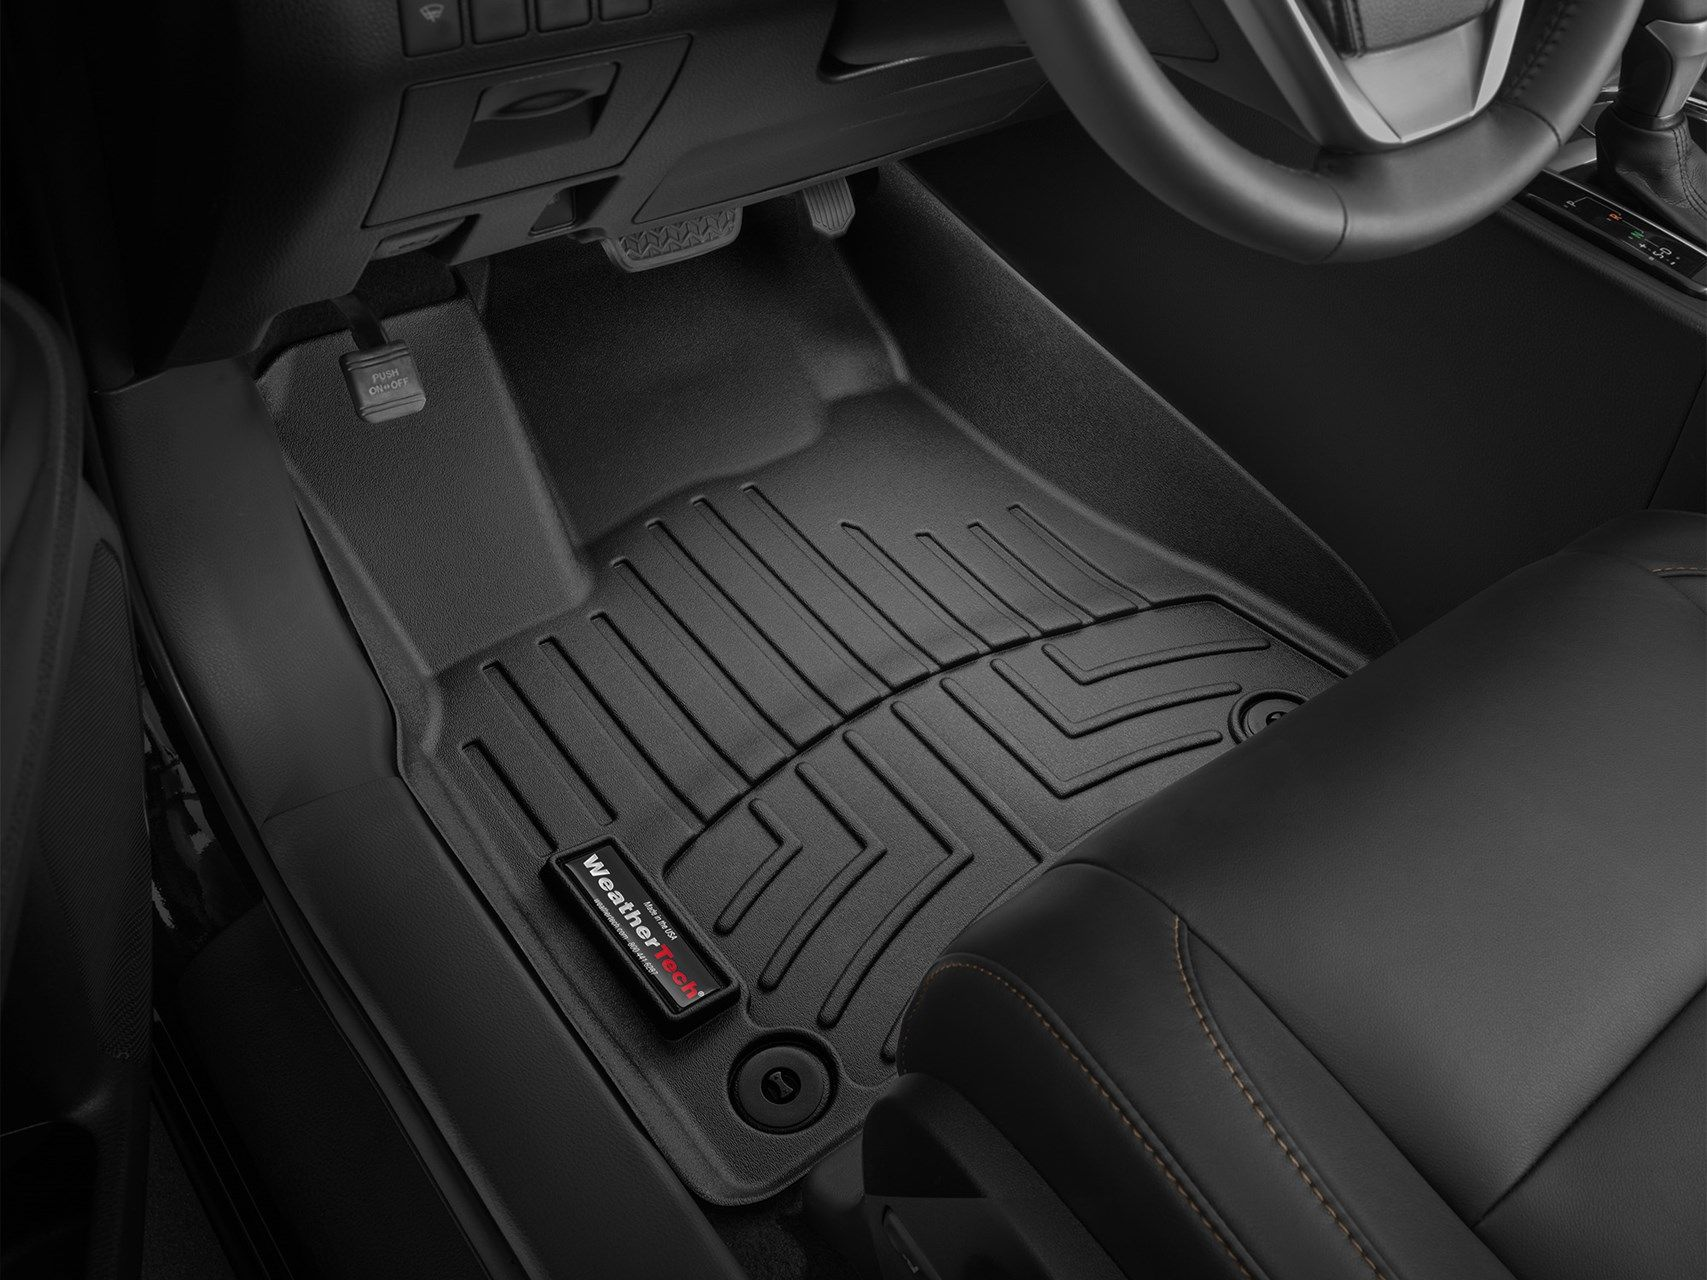 Weathertech mats cleaner - Weathertech Floor Mats